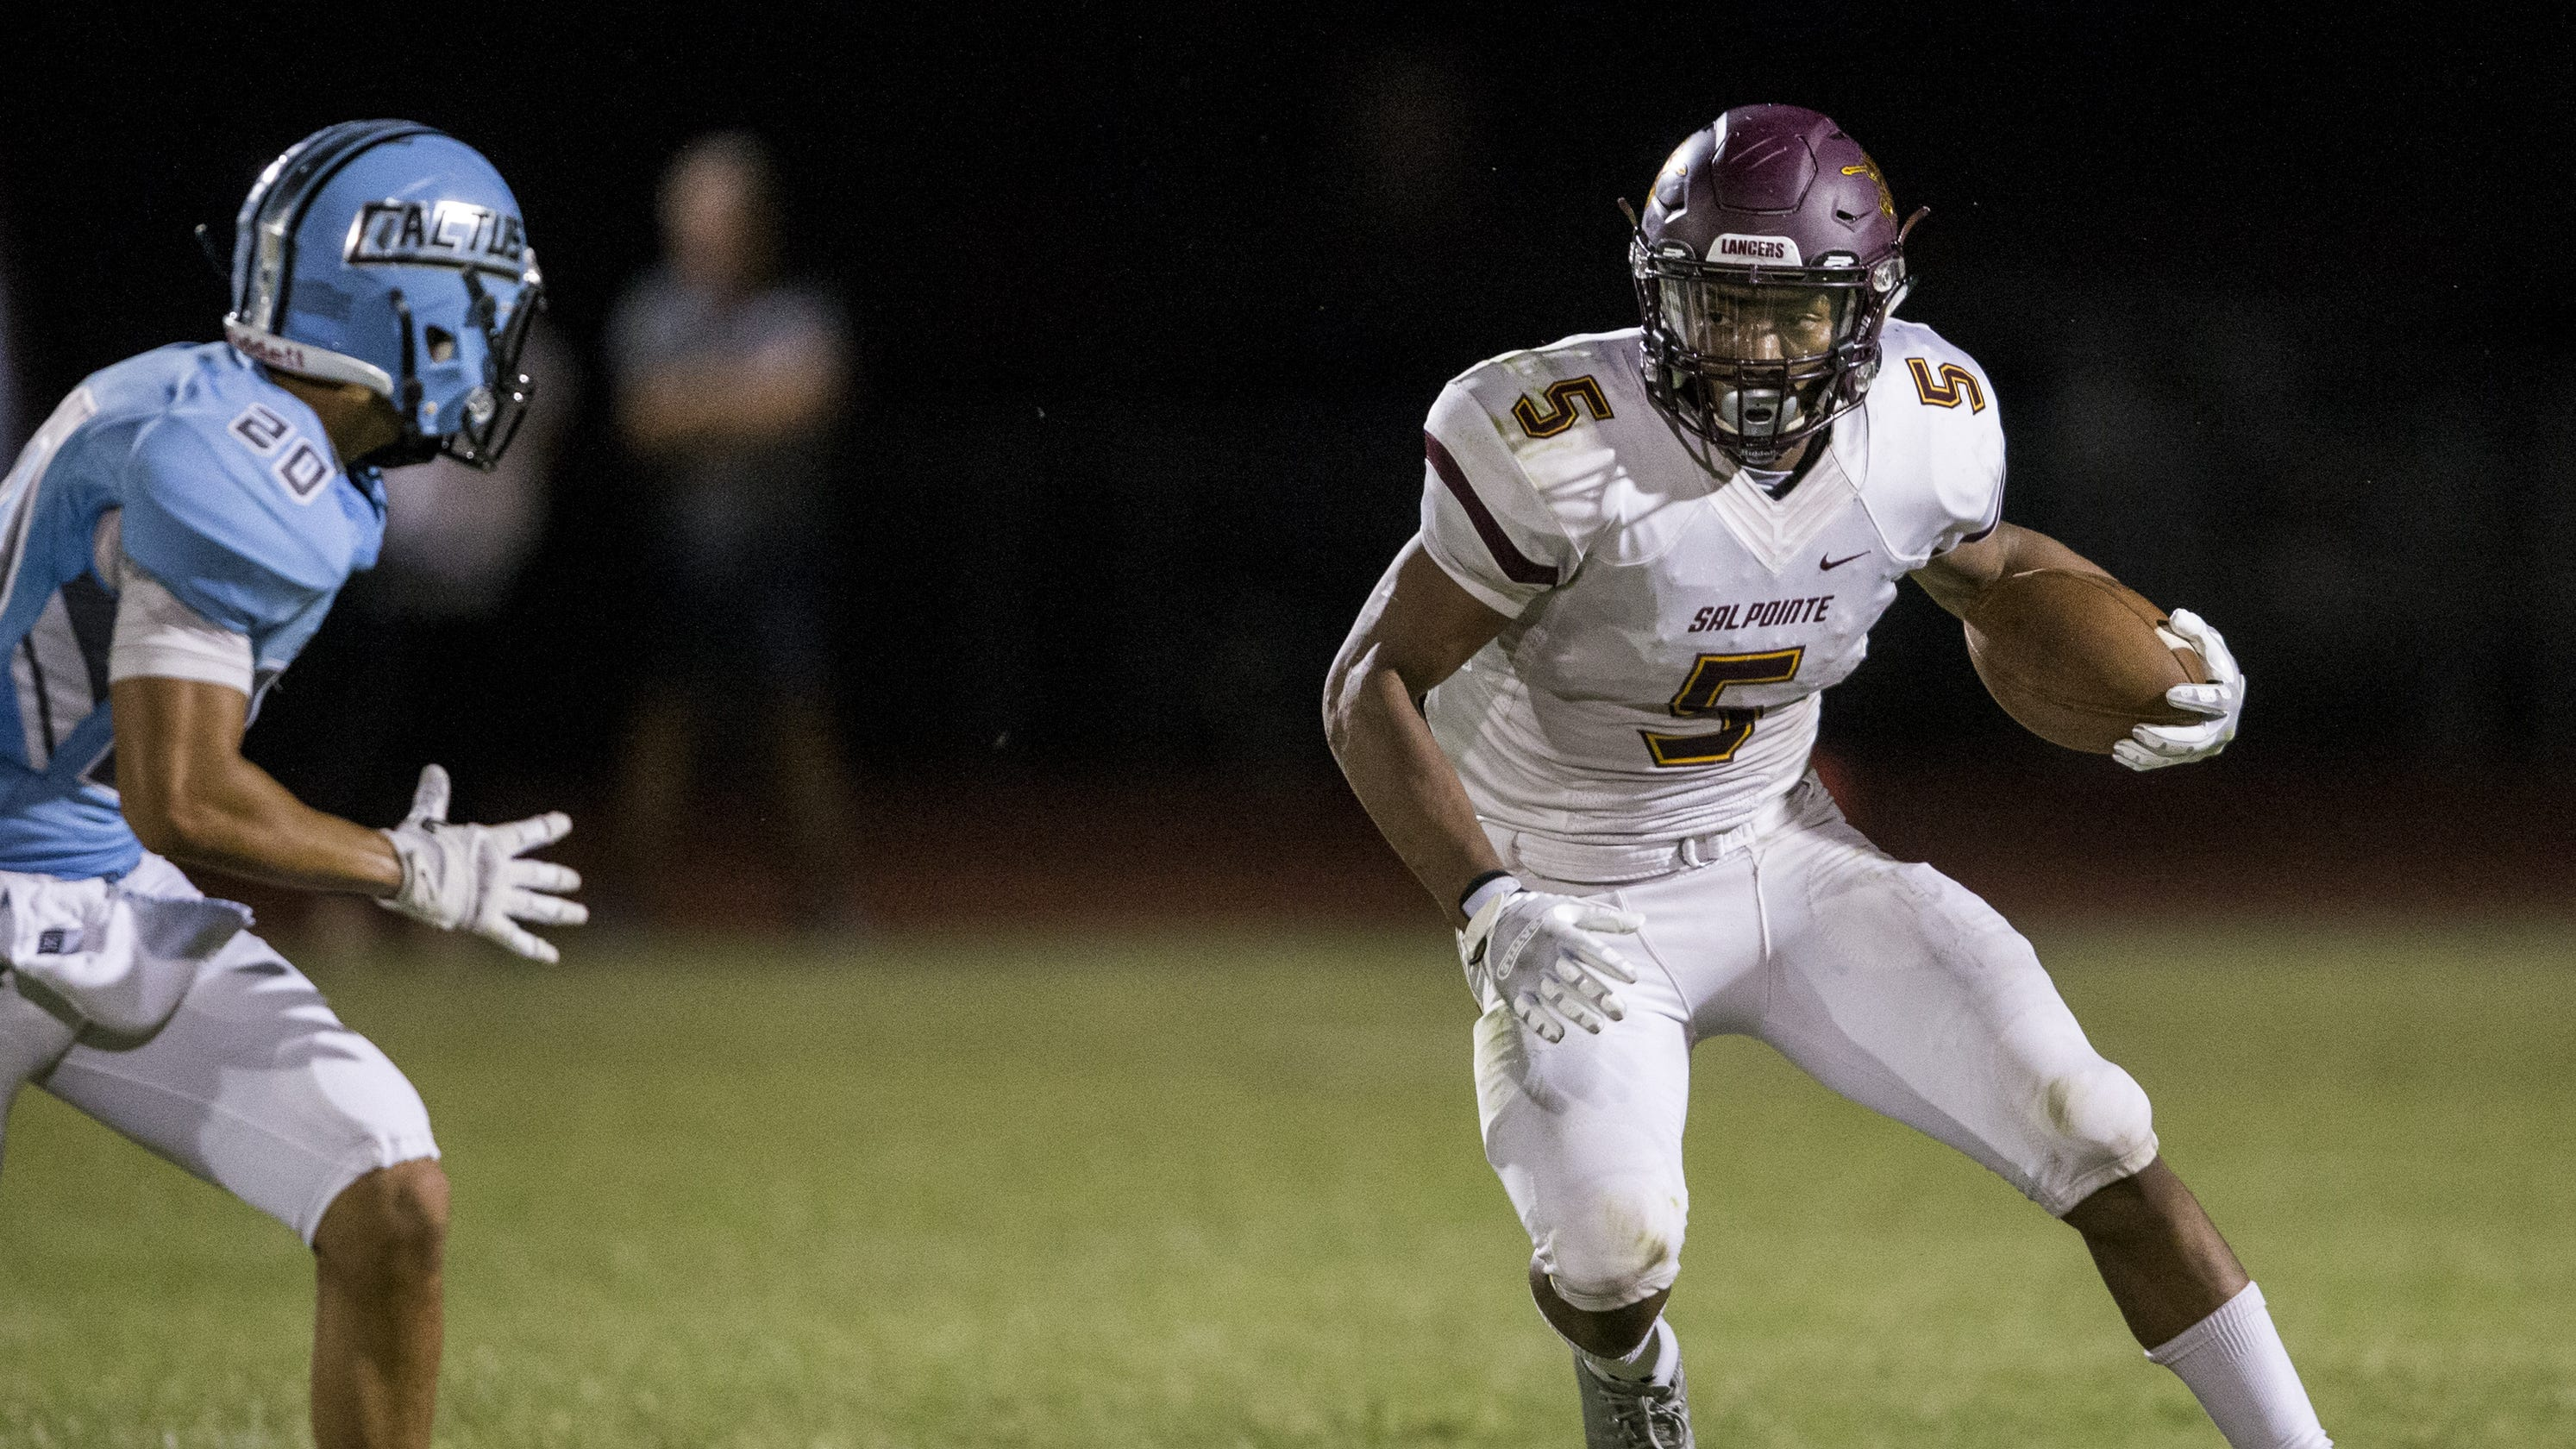 arizona high school football player of the year candidates